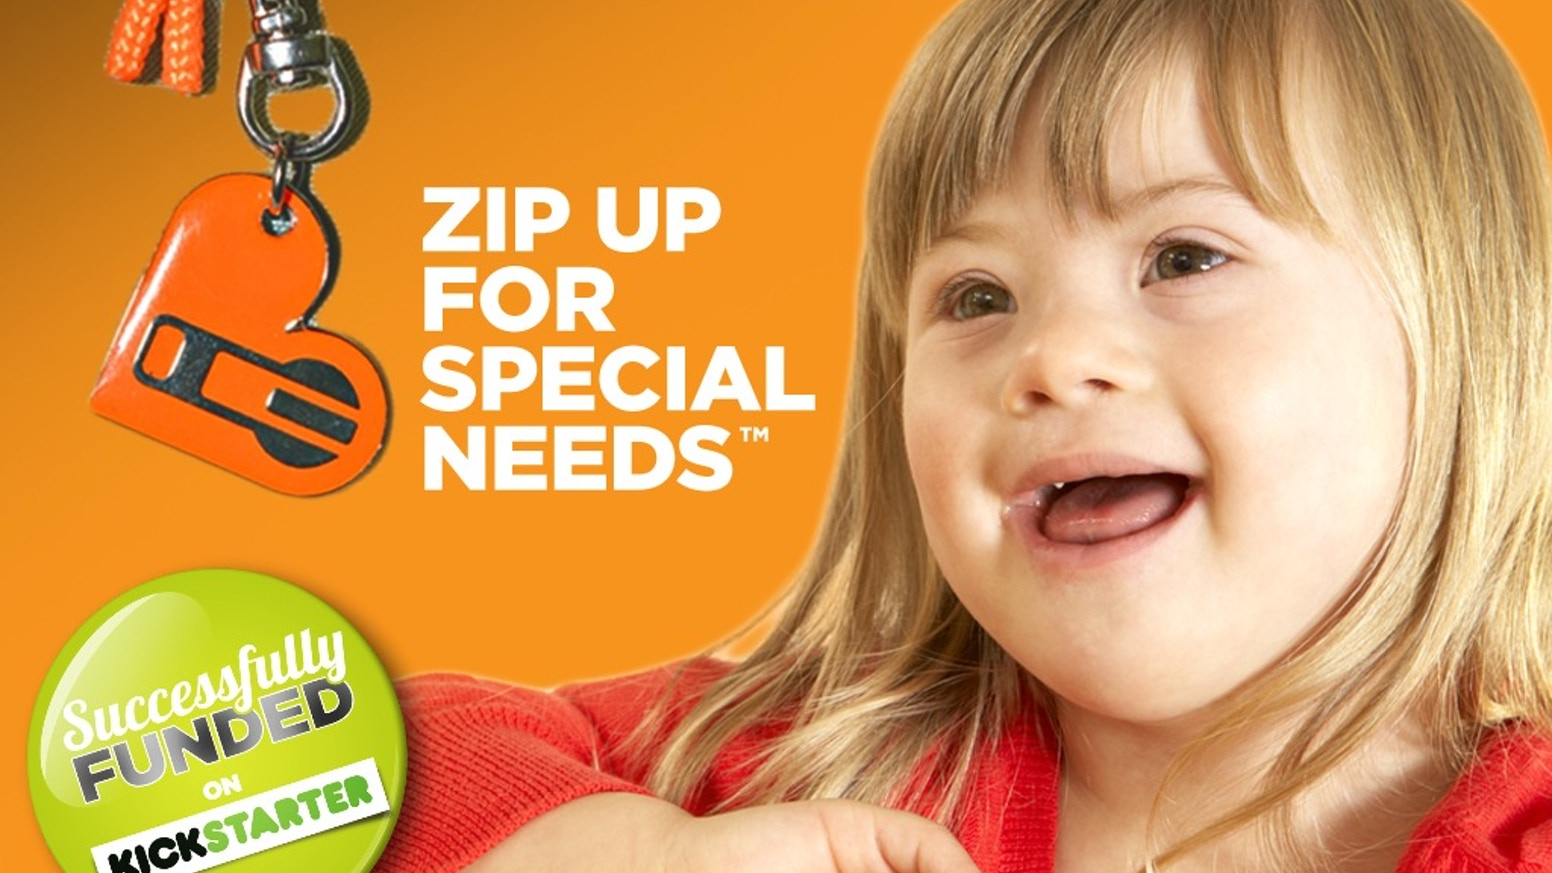 Awareness project for those with Special Needs ~ Please visit www.zipupforspecialneeds.com to learn more!